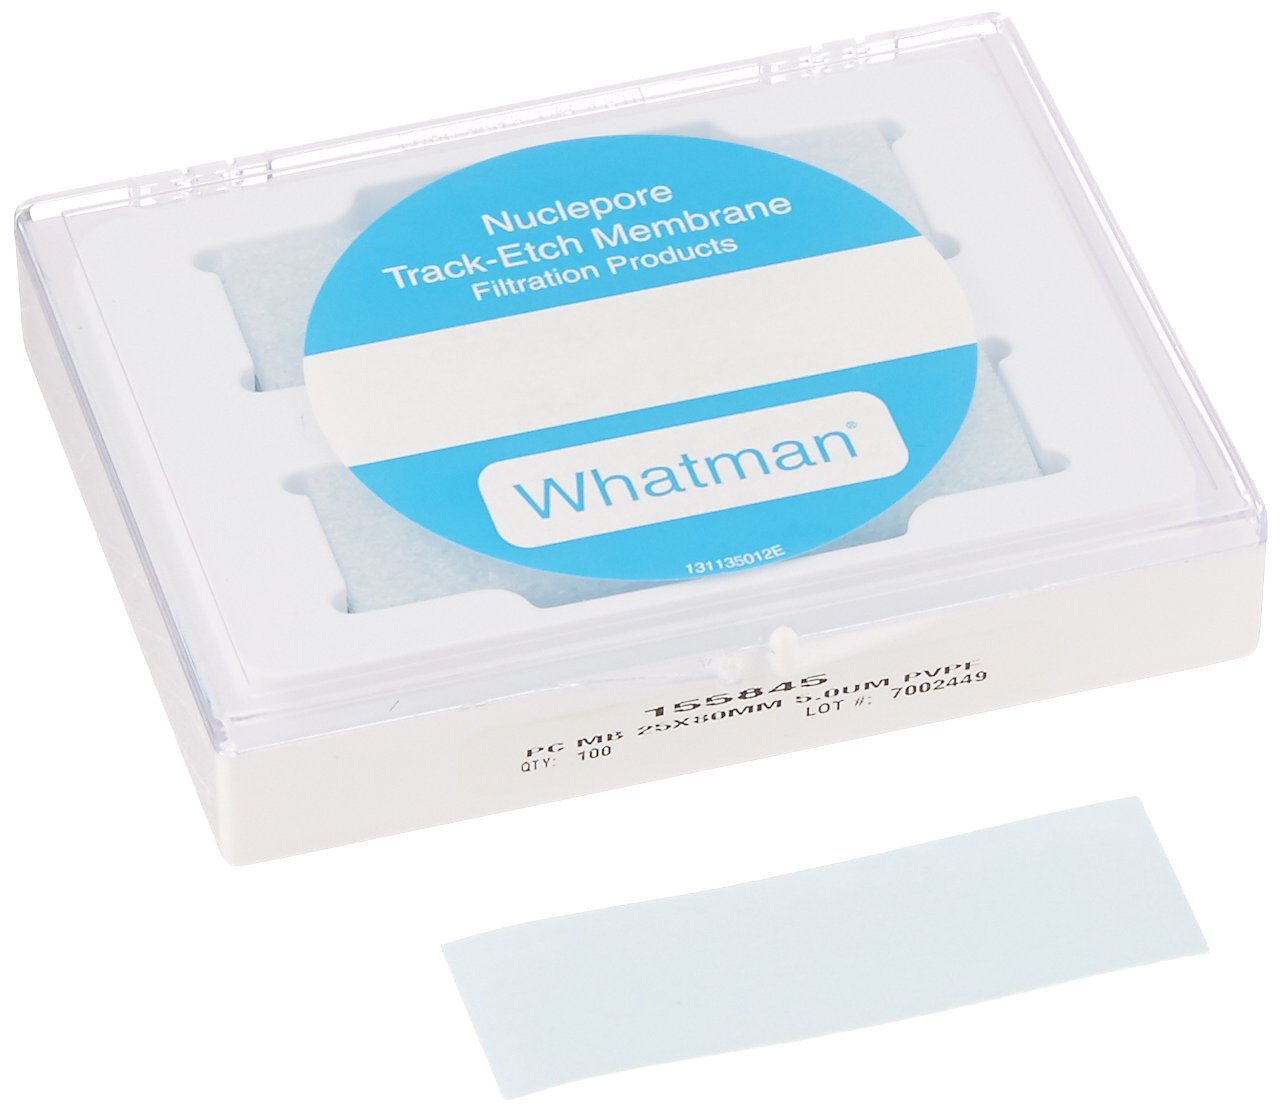 GE Whatman 155845 Polycarbonate (PVP Free) Cell Culture Track Etched Membrane, Circle, 5m Pore Size, 25mm Width x 80mm Length (Pack of 100)